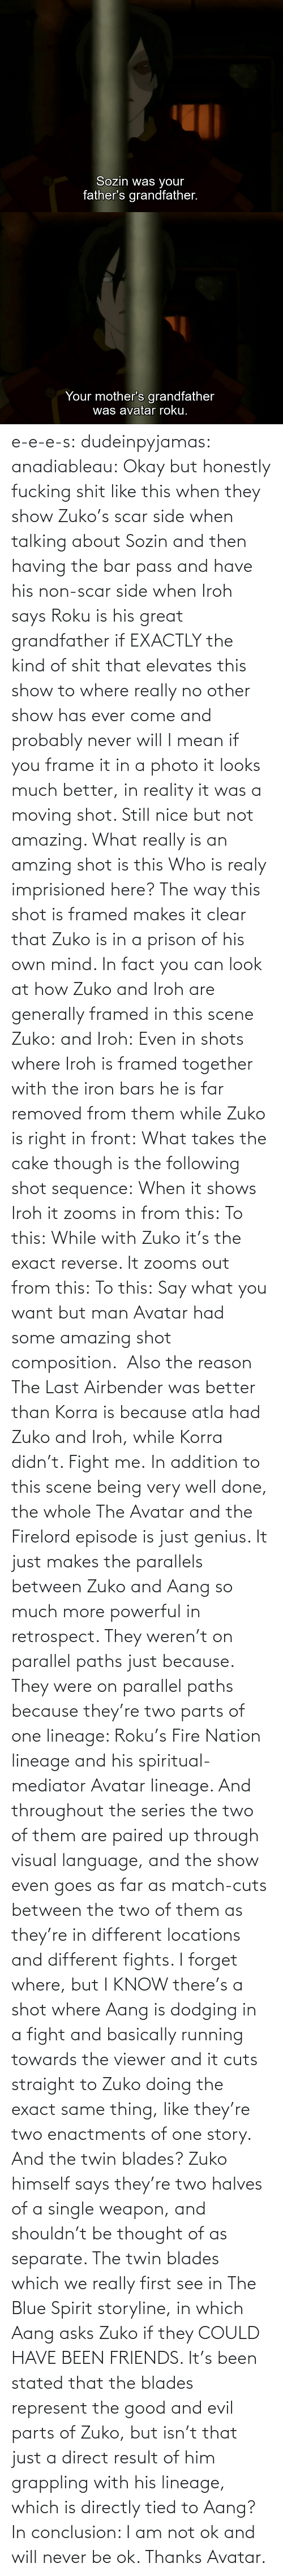 thing: e-e-e-s: dudeinpyjamas:   anadiableau: Okay but honestly fucking shit like this when they show Zuko's scar side when talking about Sozin and then having the bar pass and have his non-scar side when Iroh says Roku is his great grandfather if EXACTLY the kind of shit that elevates this show to where really no other show has ever come and probably never will I mean if you frame it in a photo it looks much better, in reality it was a moving shot. Still nice but not amazing. What really is an amzing shot is this Who is realy imprisioned here? The way this shot is framed makes it clear that Zuko is in a prison of his own mind. In fact you can look at how Zuko and Iroh are generally framed in this scene Zuko: and Iroh: Even in shots where Iroh is framed together with the iron bars he is far removed from them while Zuko is right in front:  What takes the cake though is the following shot sequence: When it shows Iroh it zooms in from this: To this: While with Zuko it's the exact reverse. It zooms out from this: To this: Say what you want but man Avatar had some amazing shot composition.   Also the reason The Last Airbender was better than Korra is because atla had Zuko and Iroh, while Korra didn't. Fight me.    In addition to this scene being very well done, the whole The Avatar and the Firelord episode is just genius.  It just makes the parallels between Zuko and Aang so much more powerful in retrospect.  They weren't on parallel paths just because.  They were on parallel paths because they're two parts of one lineage: Roku's Fire Nation lineage and his spiritual-mediator Avatar lineage.  And throughout the series the two of them are paired up through visual language, and the show even goes as far as match-cuts between the two of them as they're in different locations and different fights.  I forget where, but I KNOW there's a shot where Aang is dodging in a fight and basically running towards the viewer and it cuts straight to Zuko doing the exact same thing, like they're two enactments of one story.   And the twin blades?  Zuko himself says they're two halves of a single weapon, and shouldn't be thought of as separate.  The twin blades which we really first see in The Blue Spirit storyline, in which Aang asks Zuko if they COULD HAVE BEEN FRIENDS.  It's been stated that the blades represent the good and evil parts of Zuko, but isn't that just a direct result of him grappling with his lineage, which is directly tied to Aang? In conclusion: I am not ok and will never be ok.  Thanks Avatar.